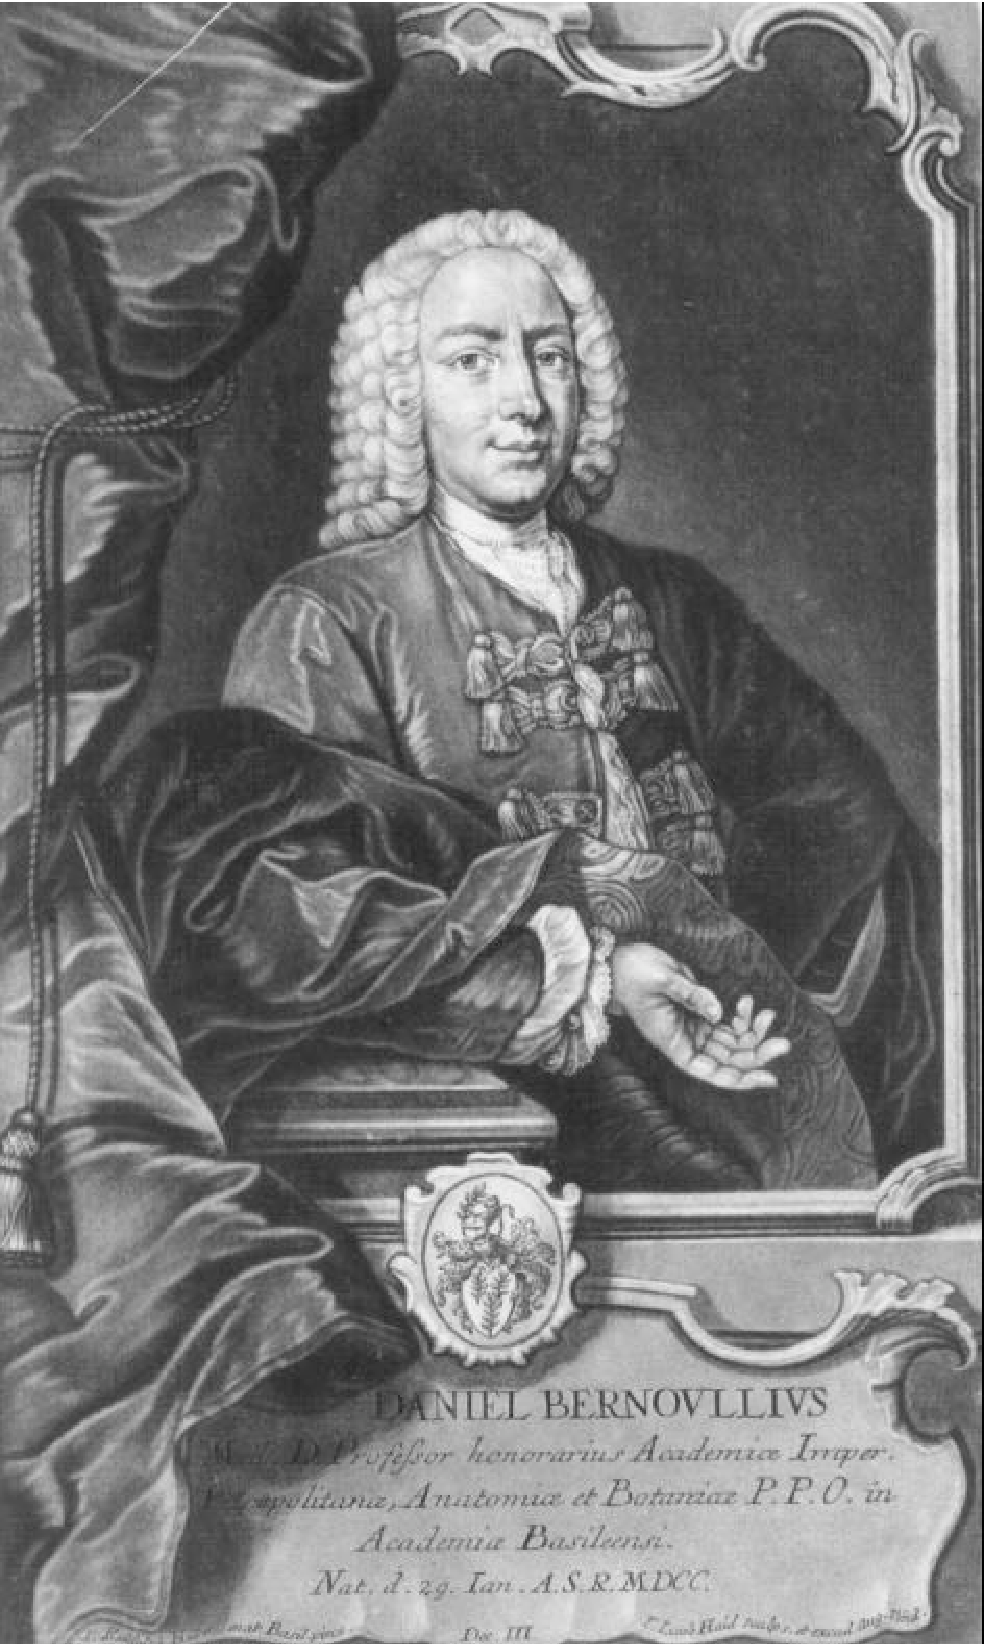 Physicist Daniel Bernoulli: biography, discoveries and interesting facts 4